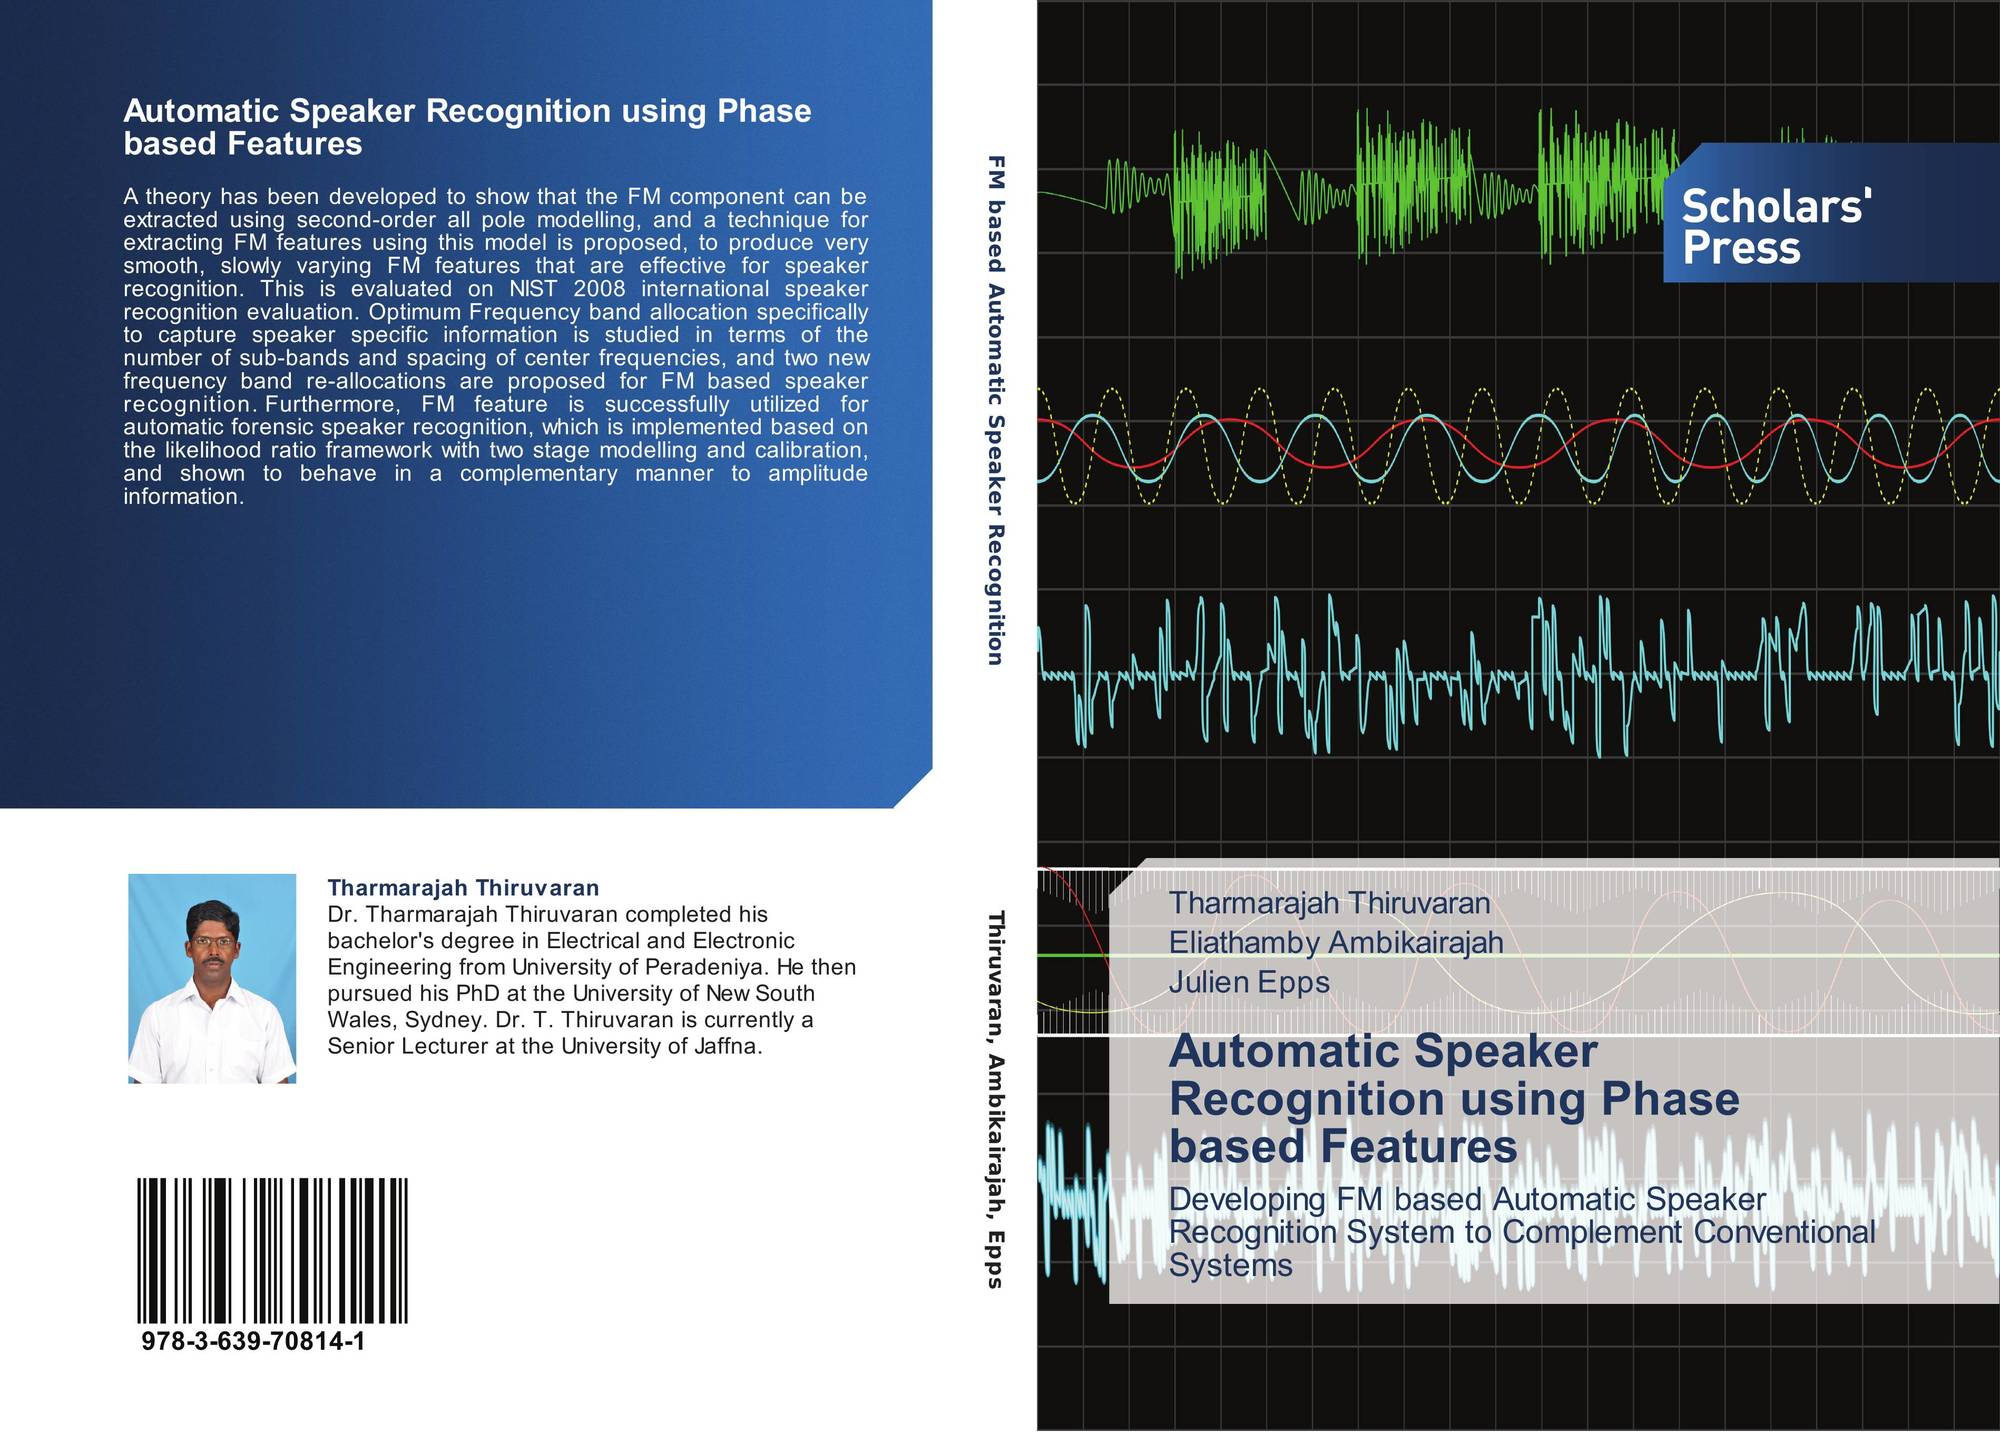 Automatic Speaker Recognition using Phase based Features, 978-3-639